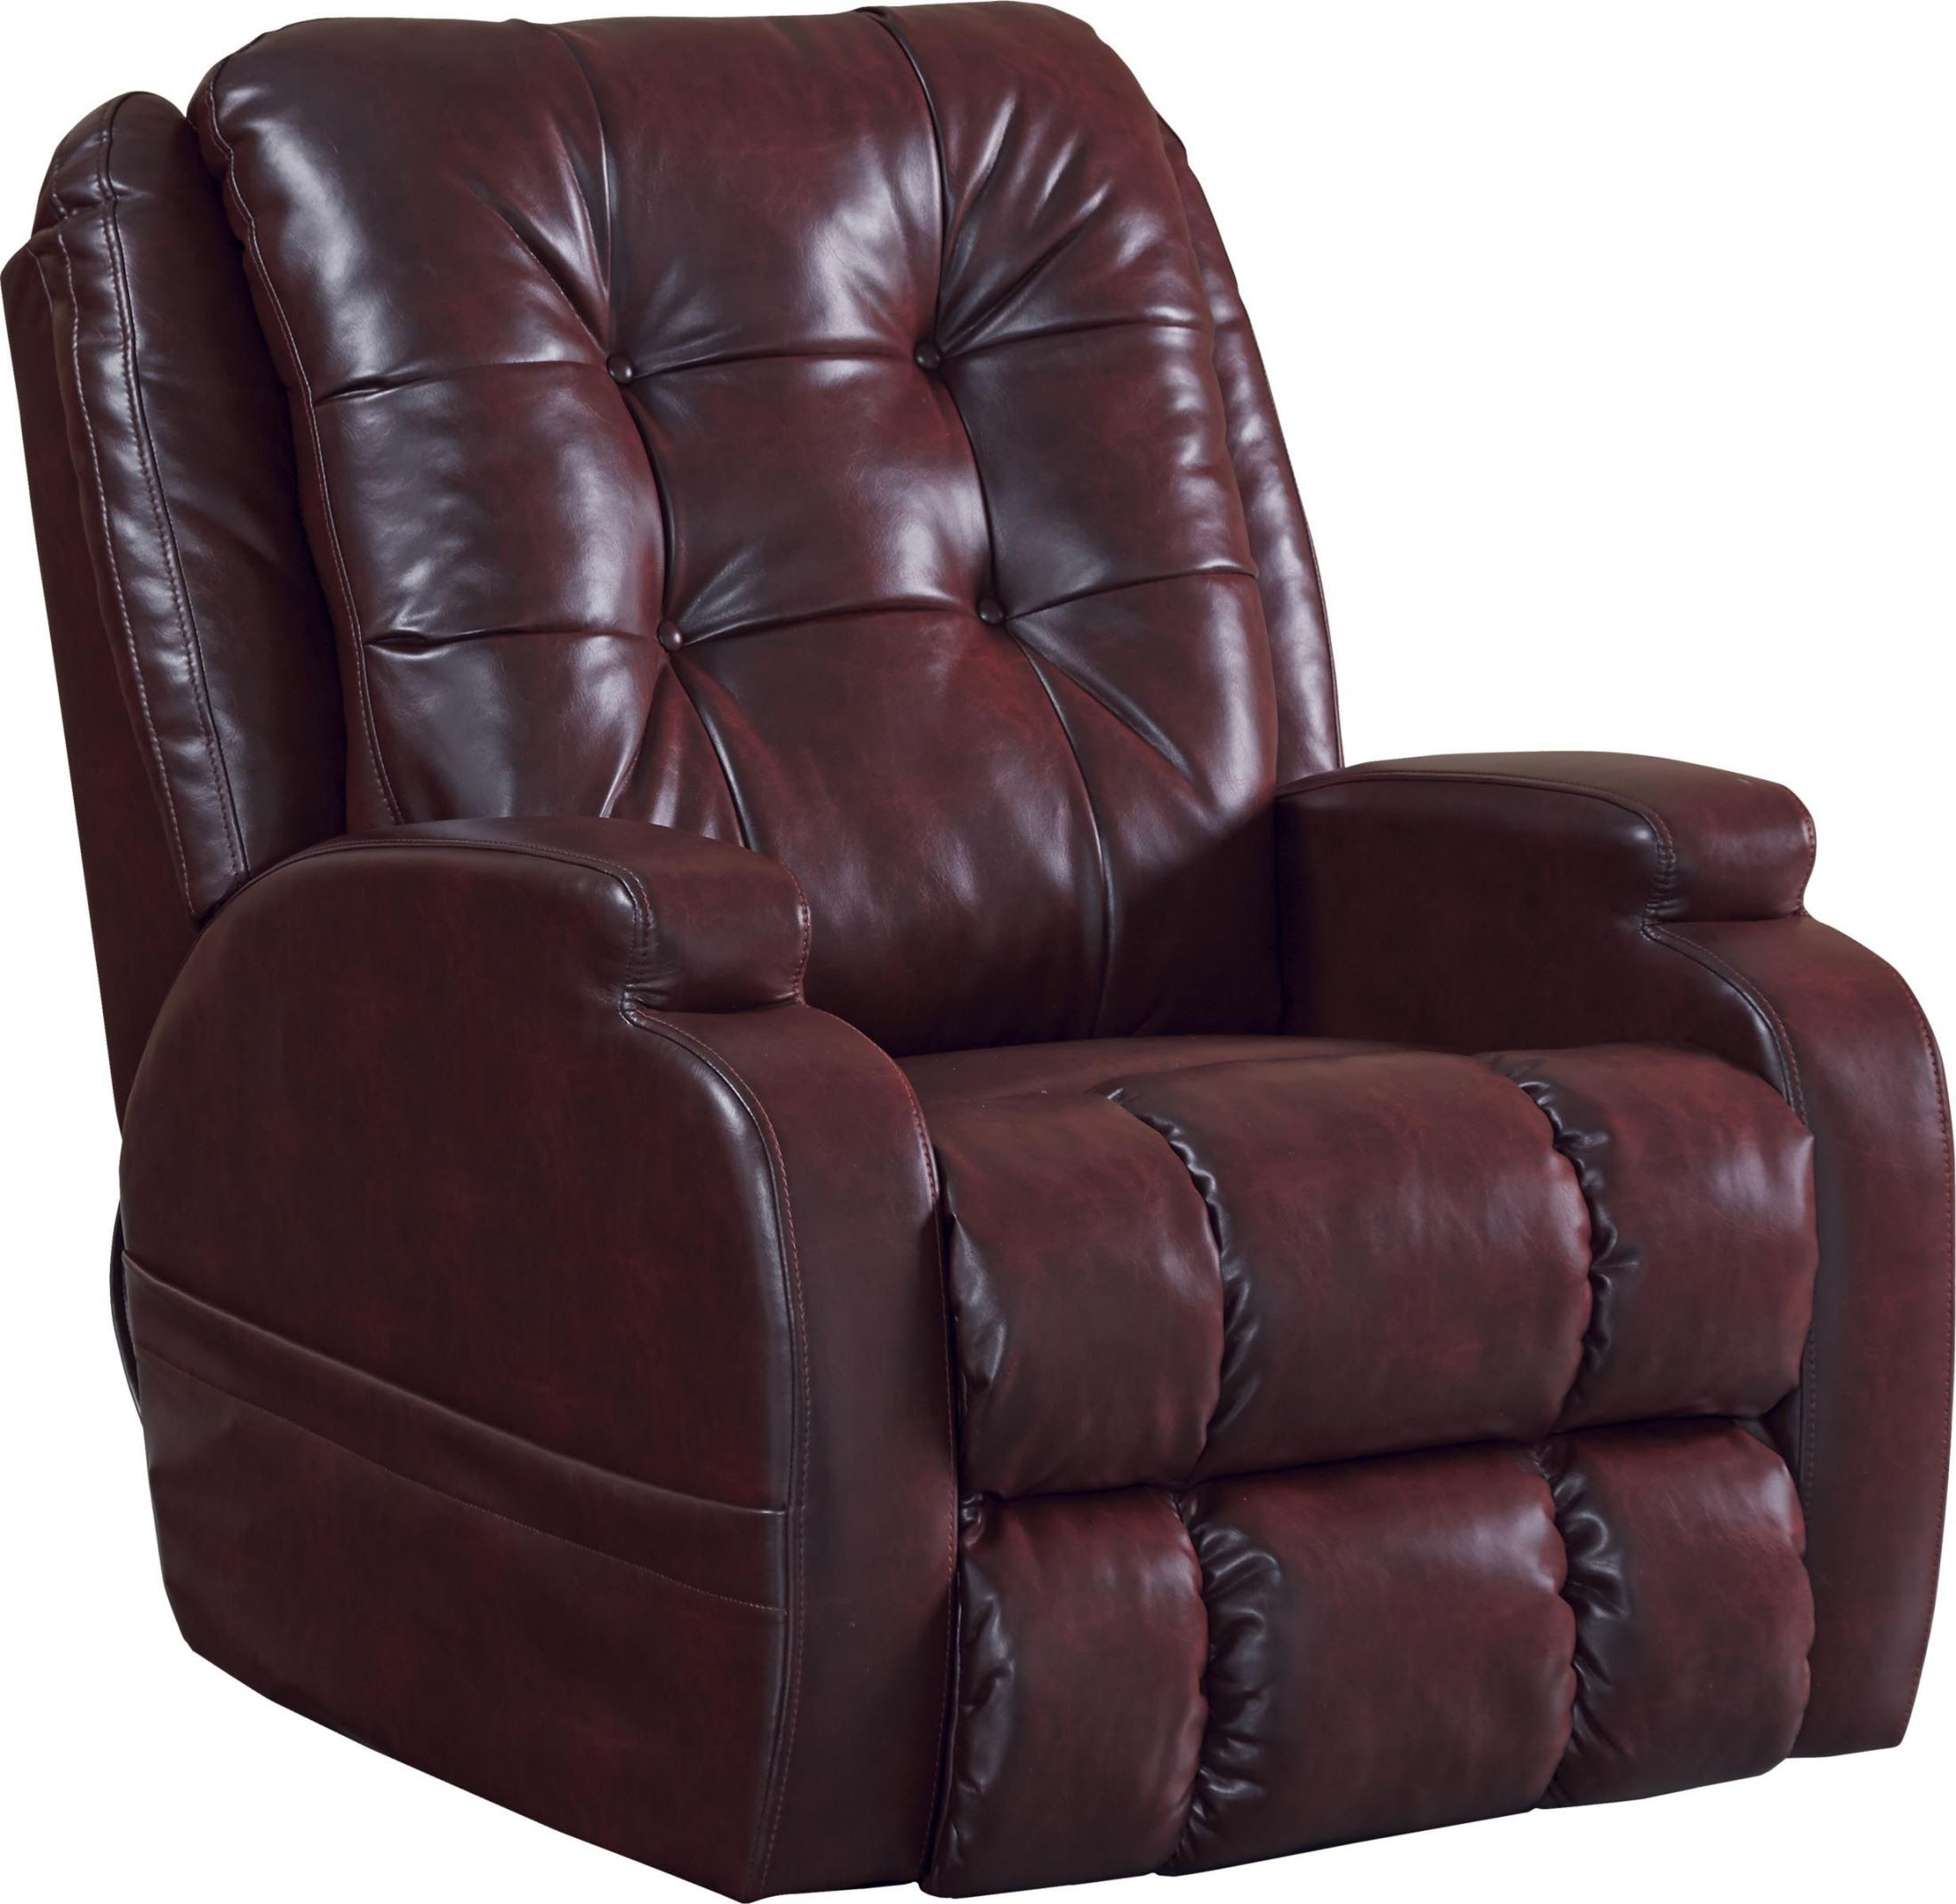 Jenson Burgundy Power Lift Recliner From Catnapper